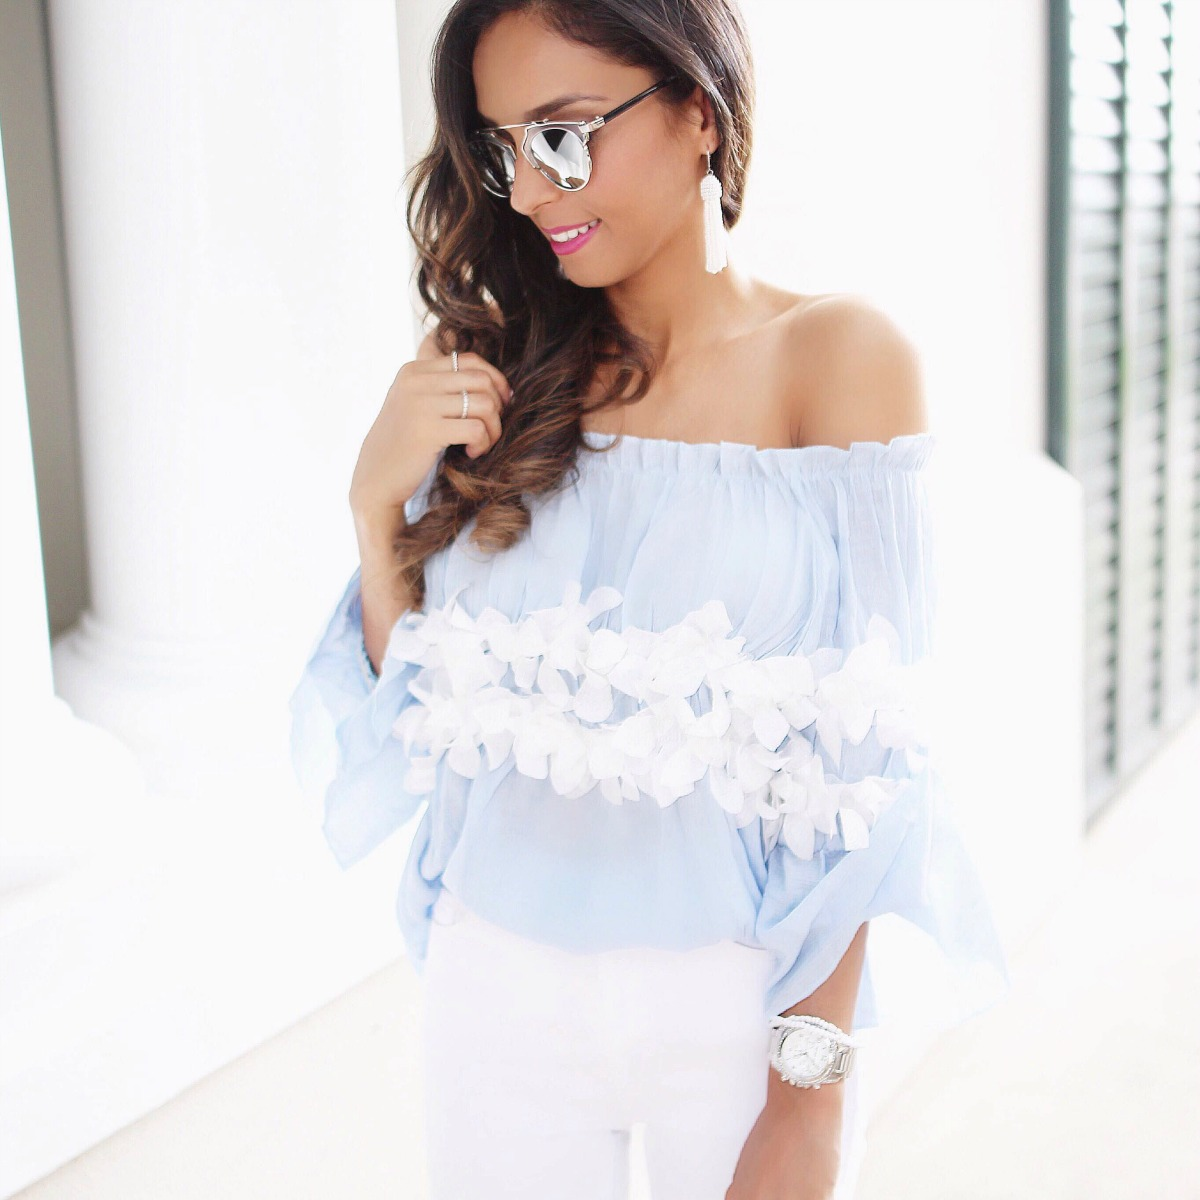 Light blue off the shoulder top with trimmed flower detail and white jeans